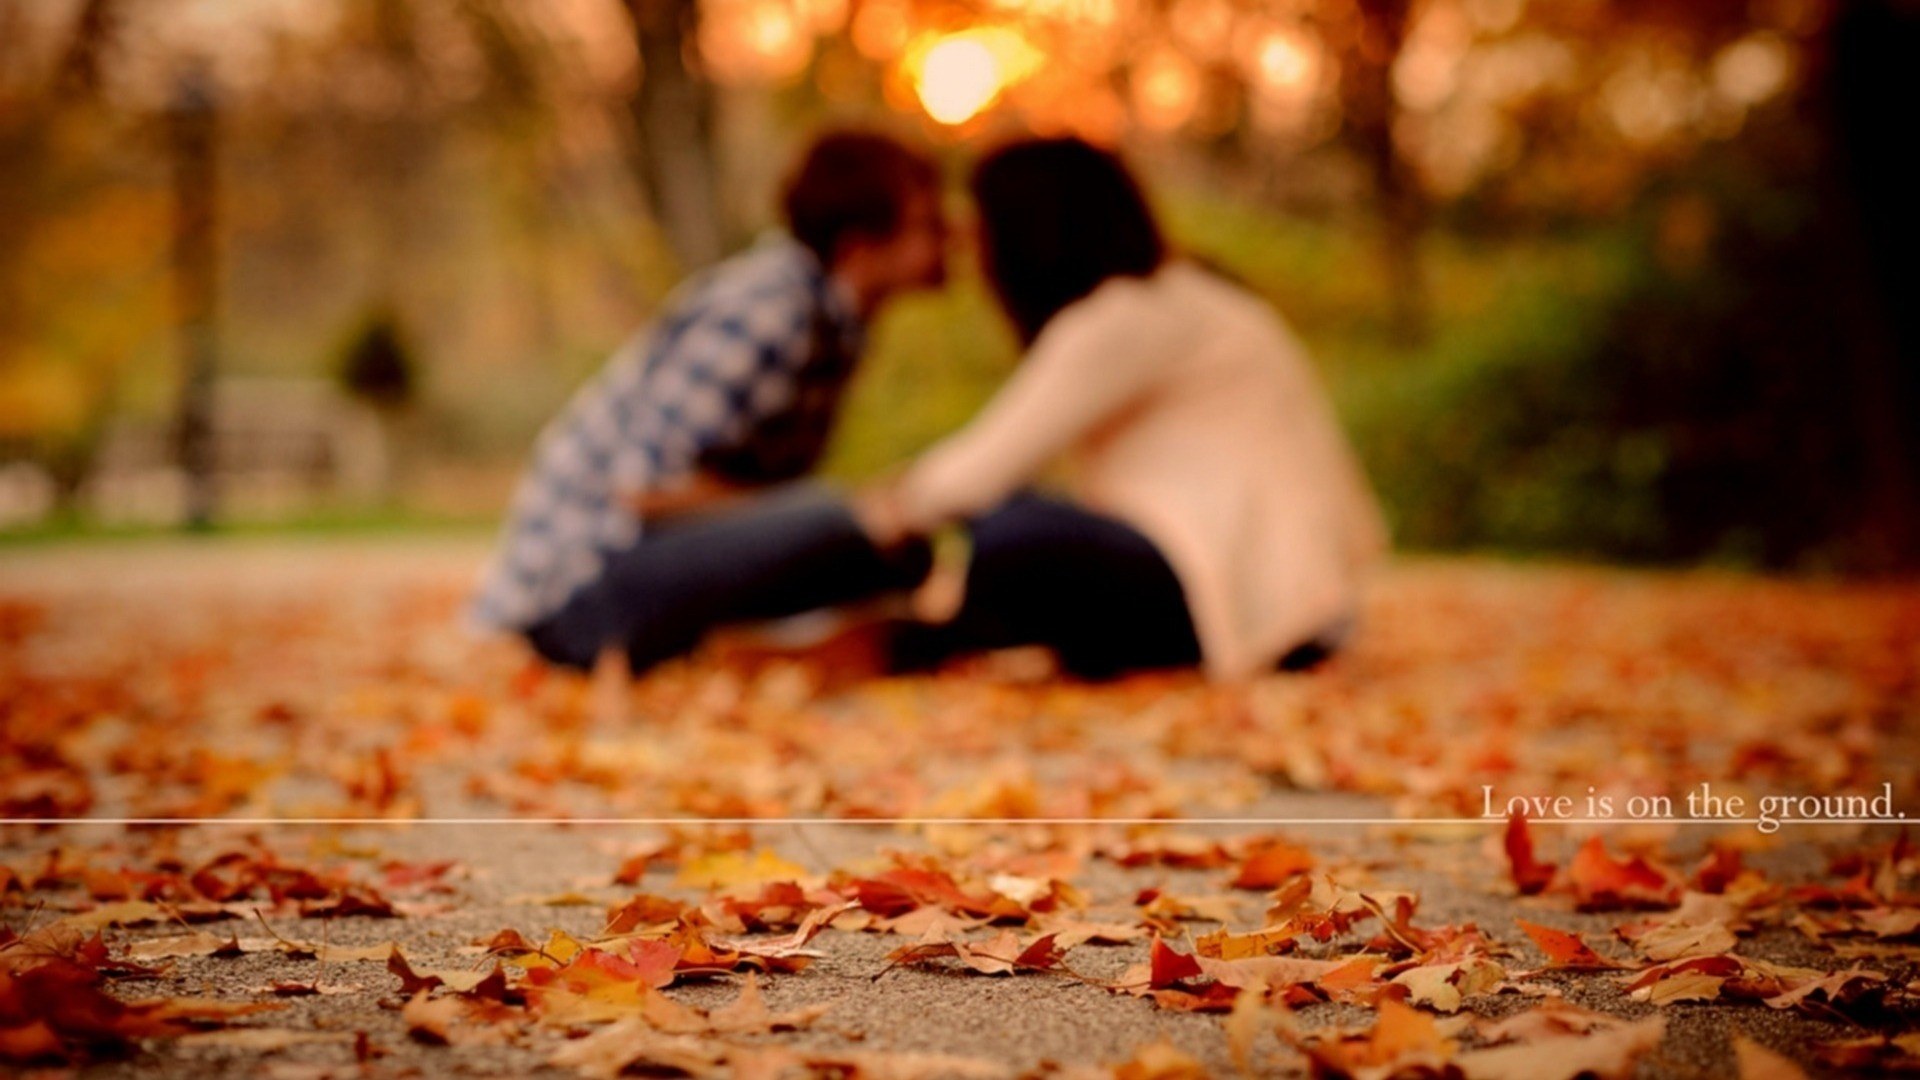 Love couple Hd Live Wallpaper : ???????? ???????? ??? ???????? ?????: ??????? ?????